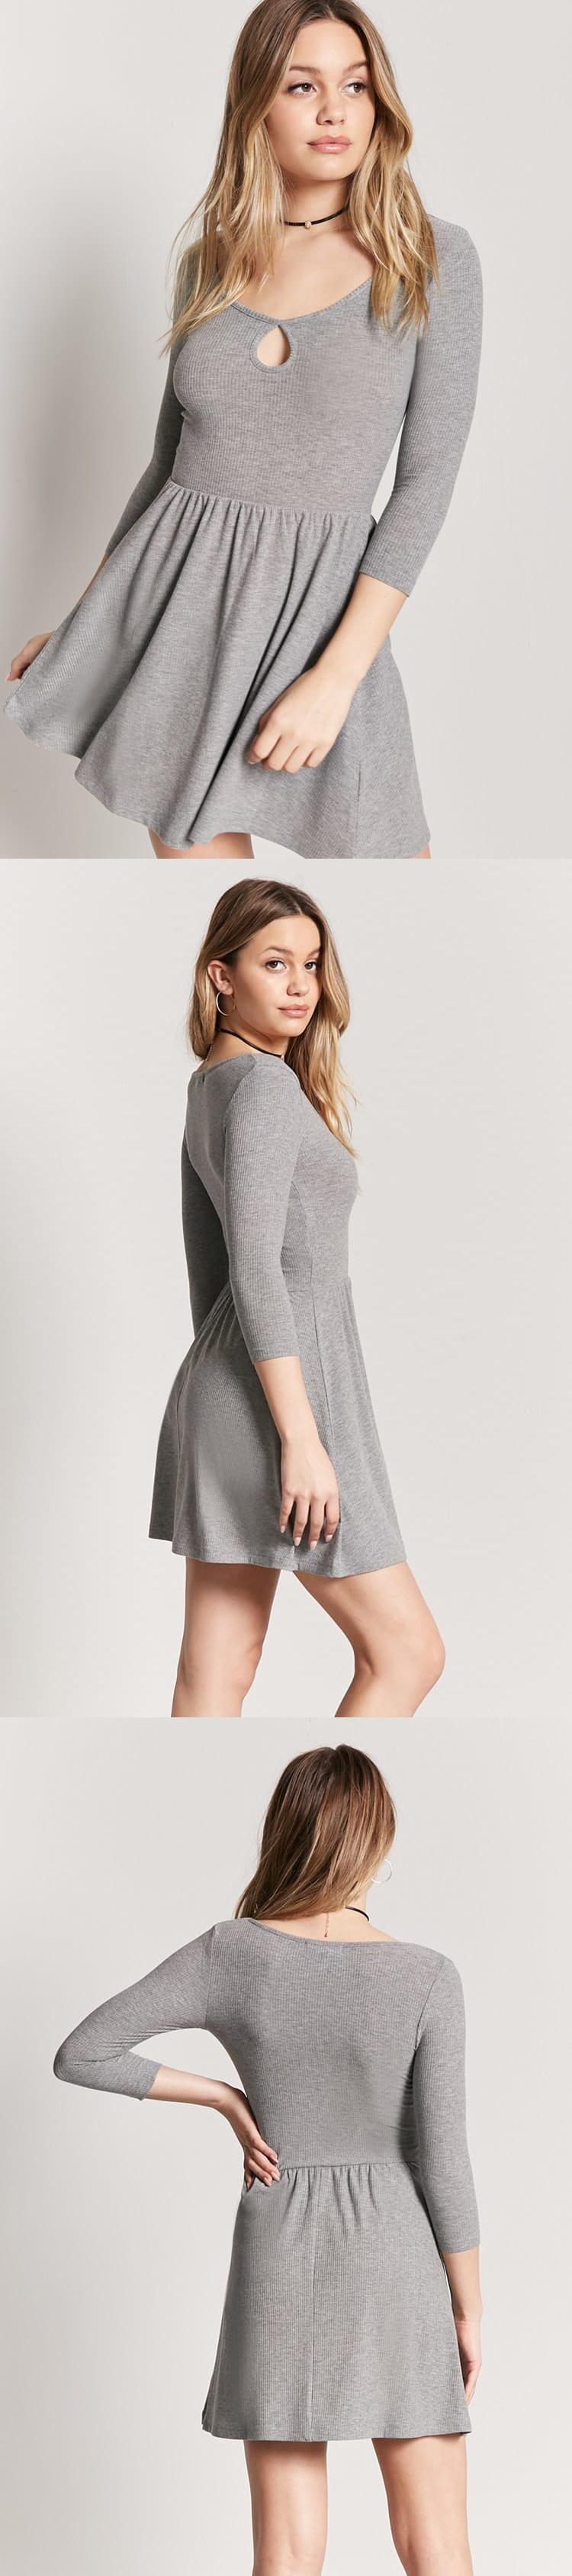 Heathered cutout skater dress usd forever new